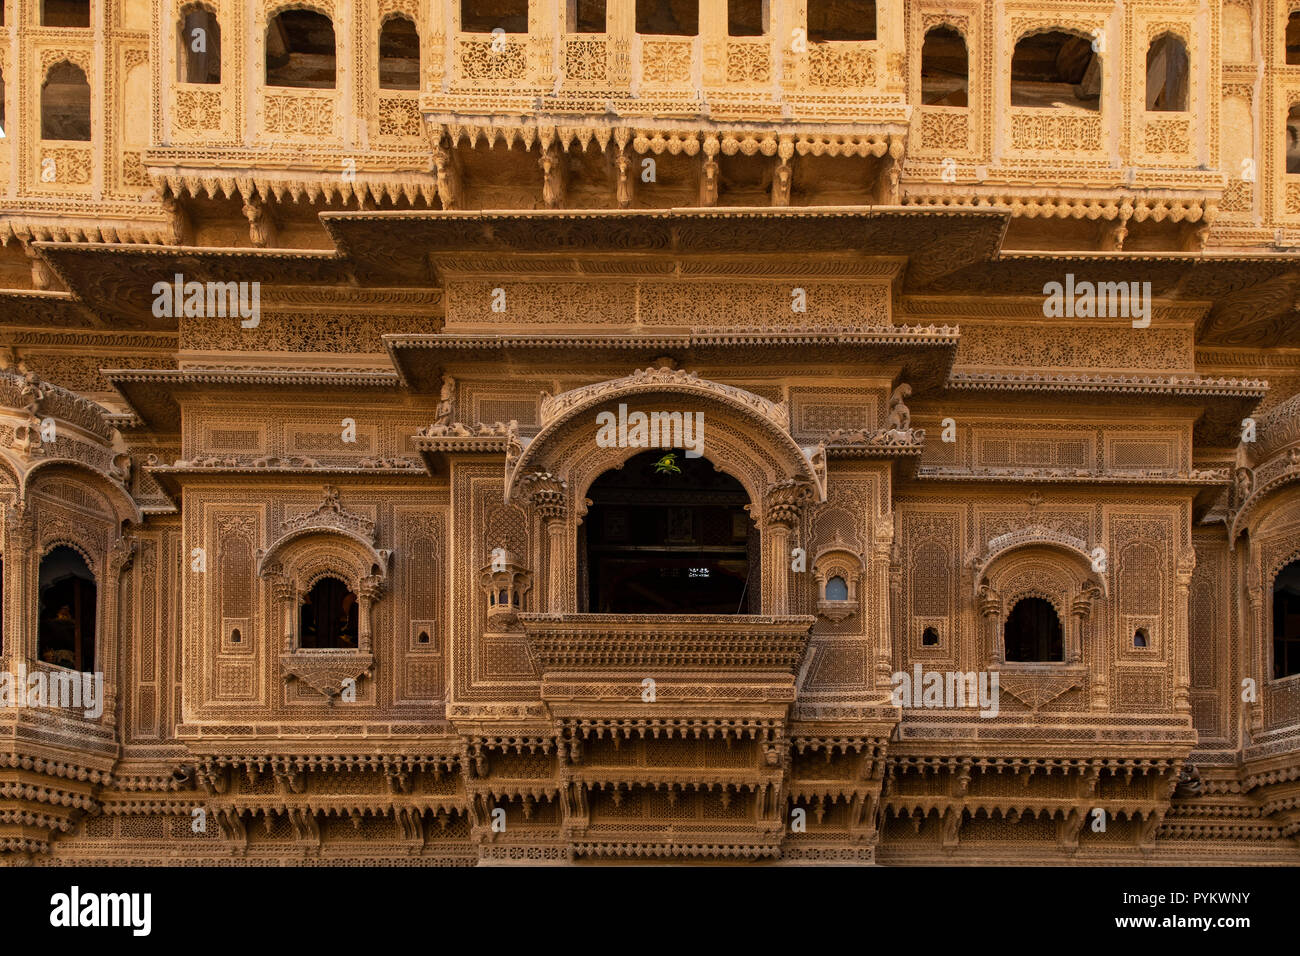 Nathmal ki Haveli Manor House, Jaisalmer, Rajasthan, India Stock Photo